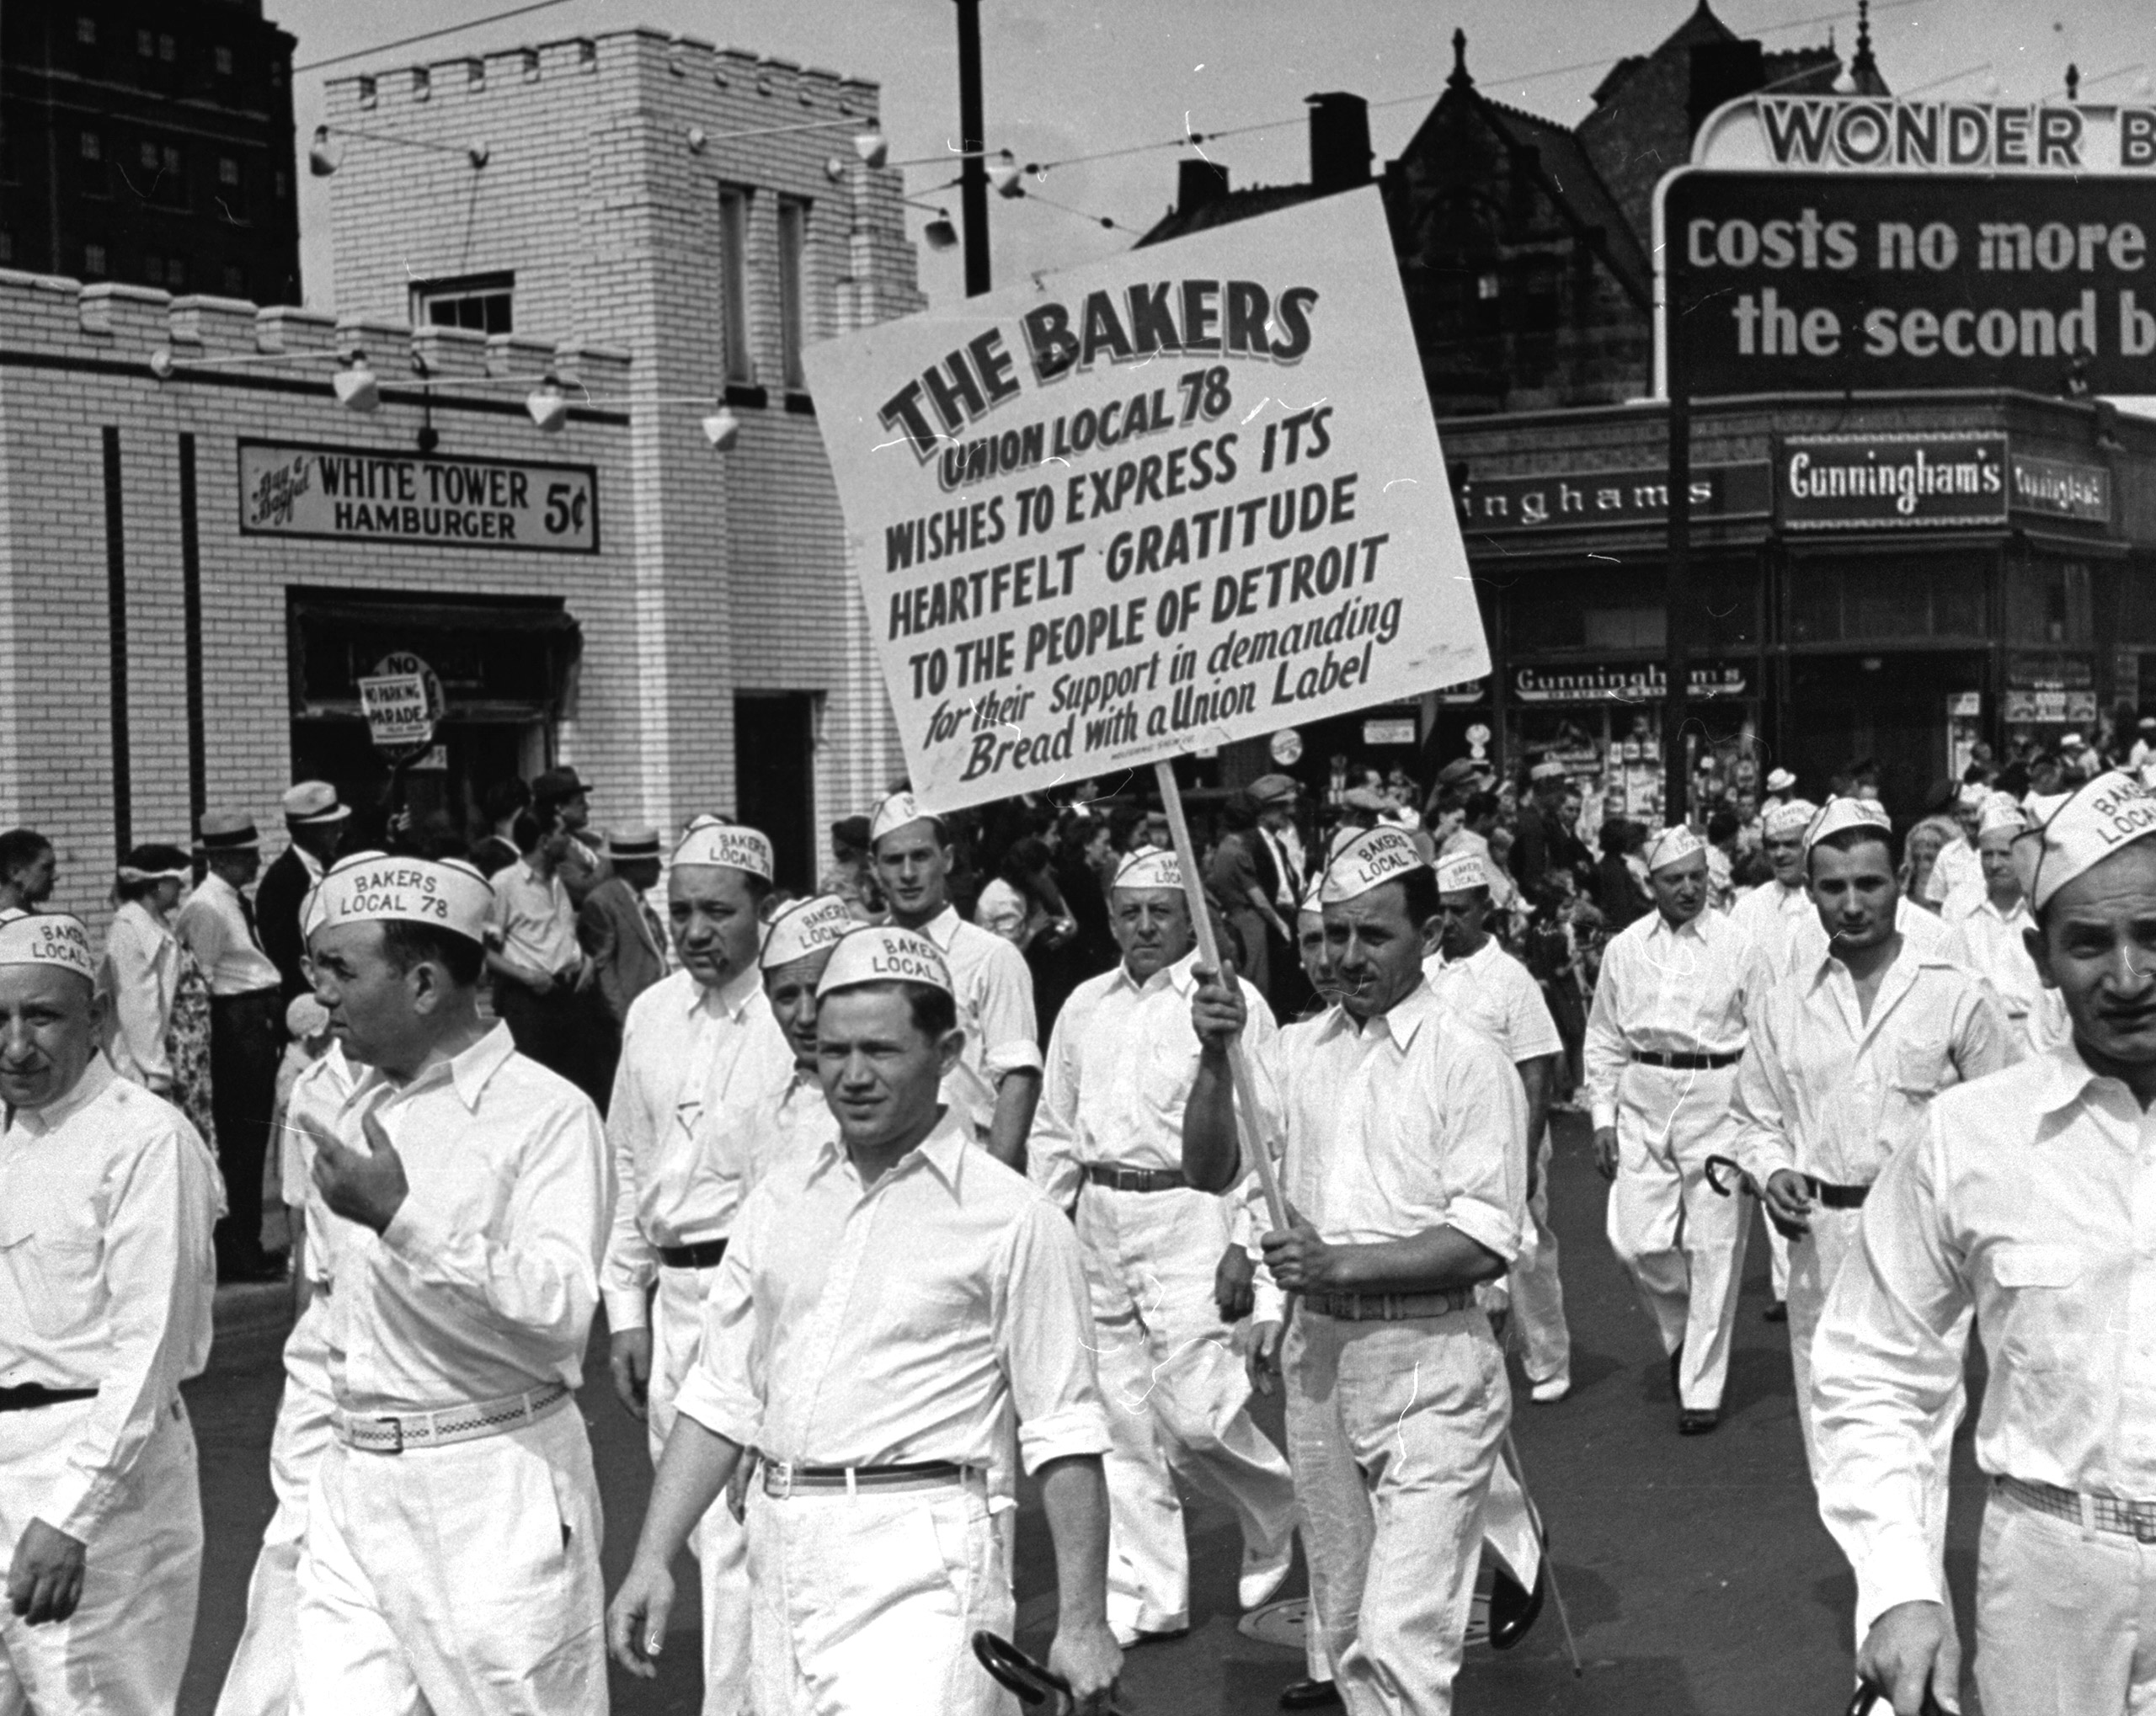 Scenes from a Labor Day Parade in Detroit, 1938.